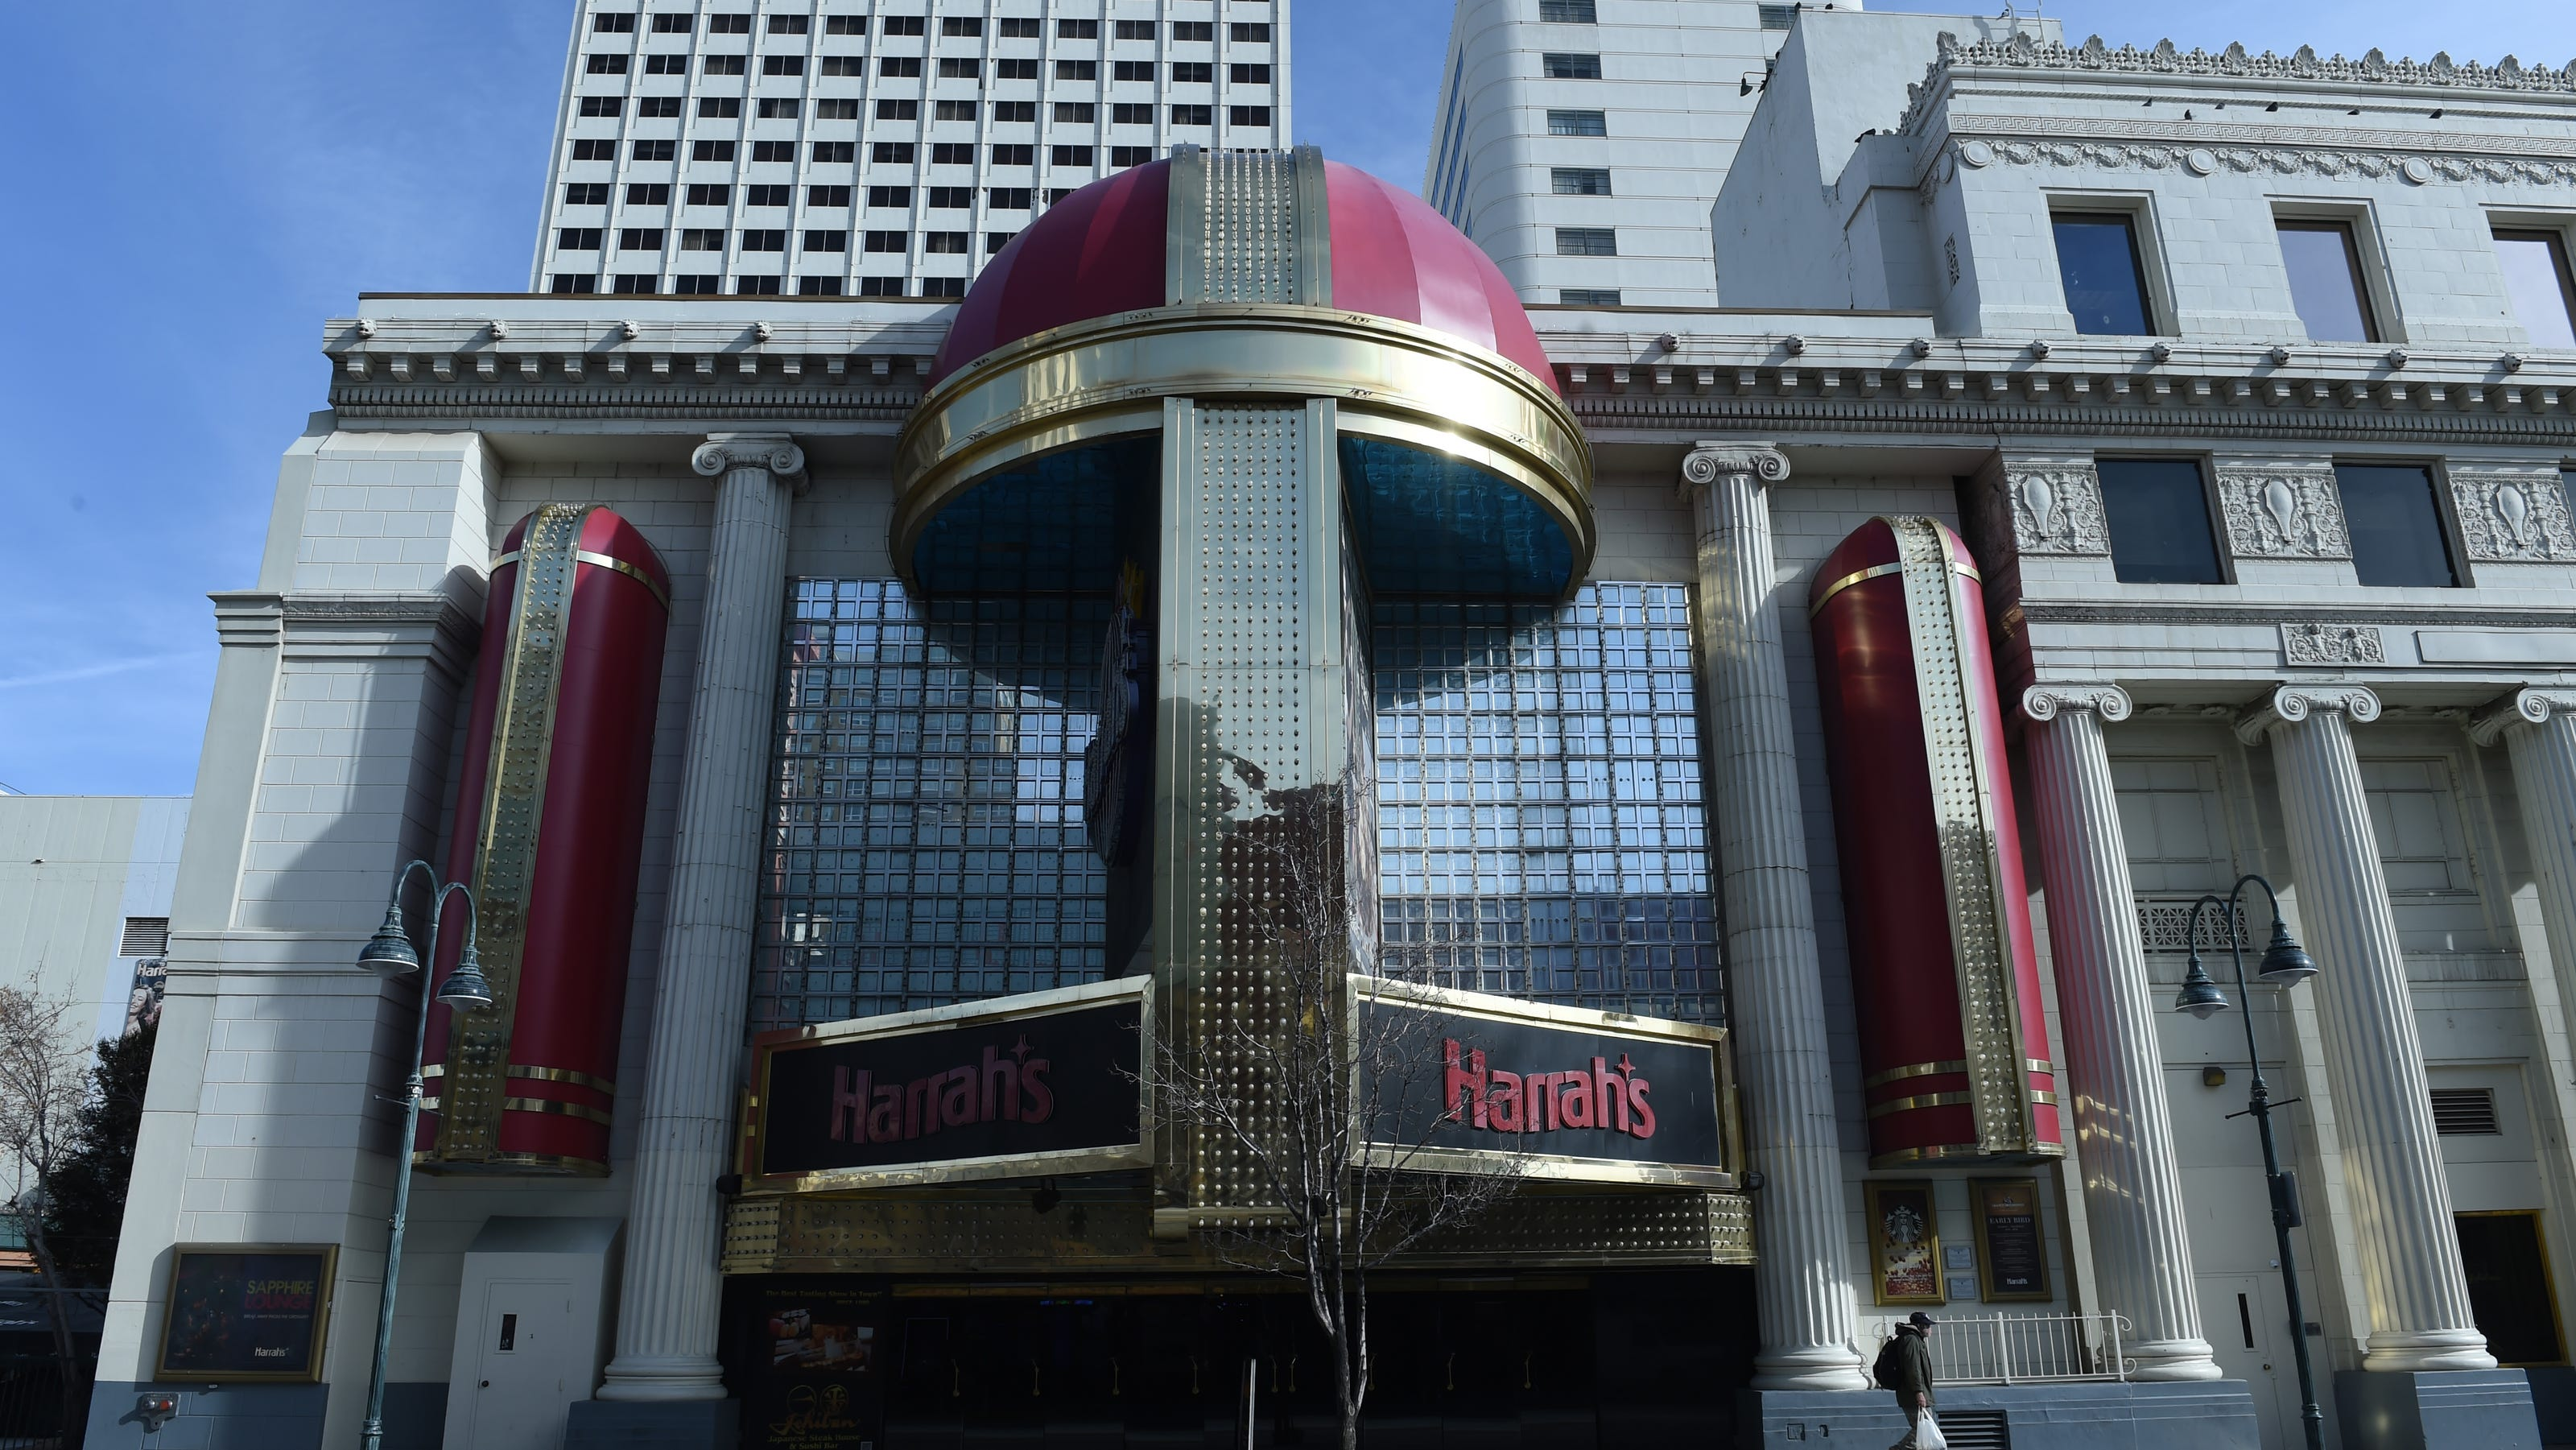 Owner of harrahs hotel and casino casino game chances